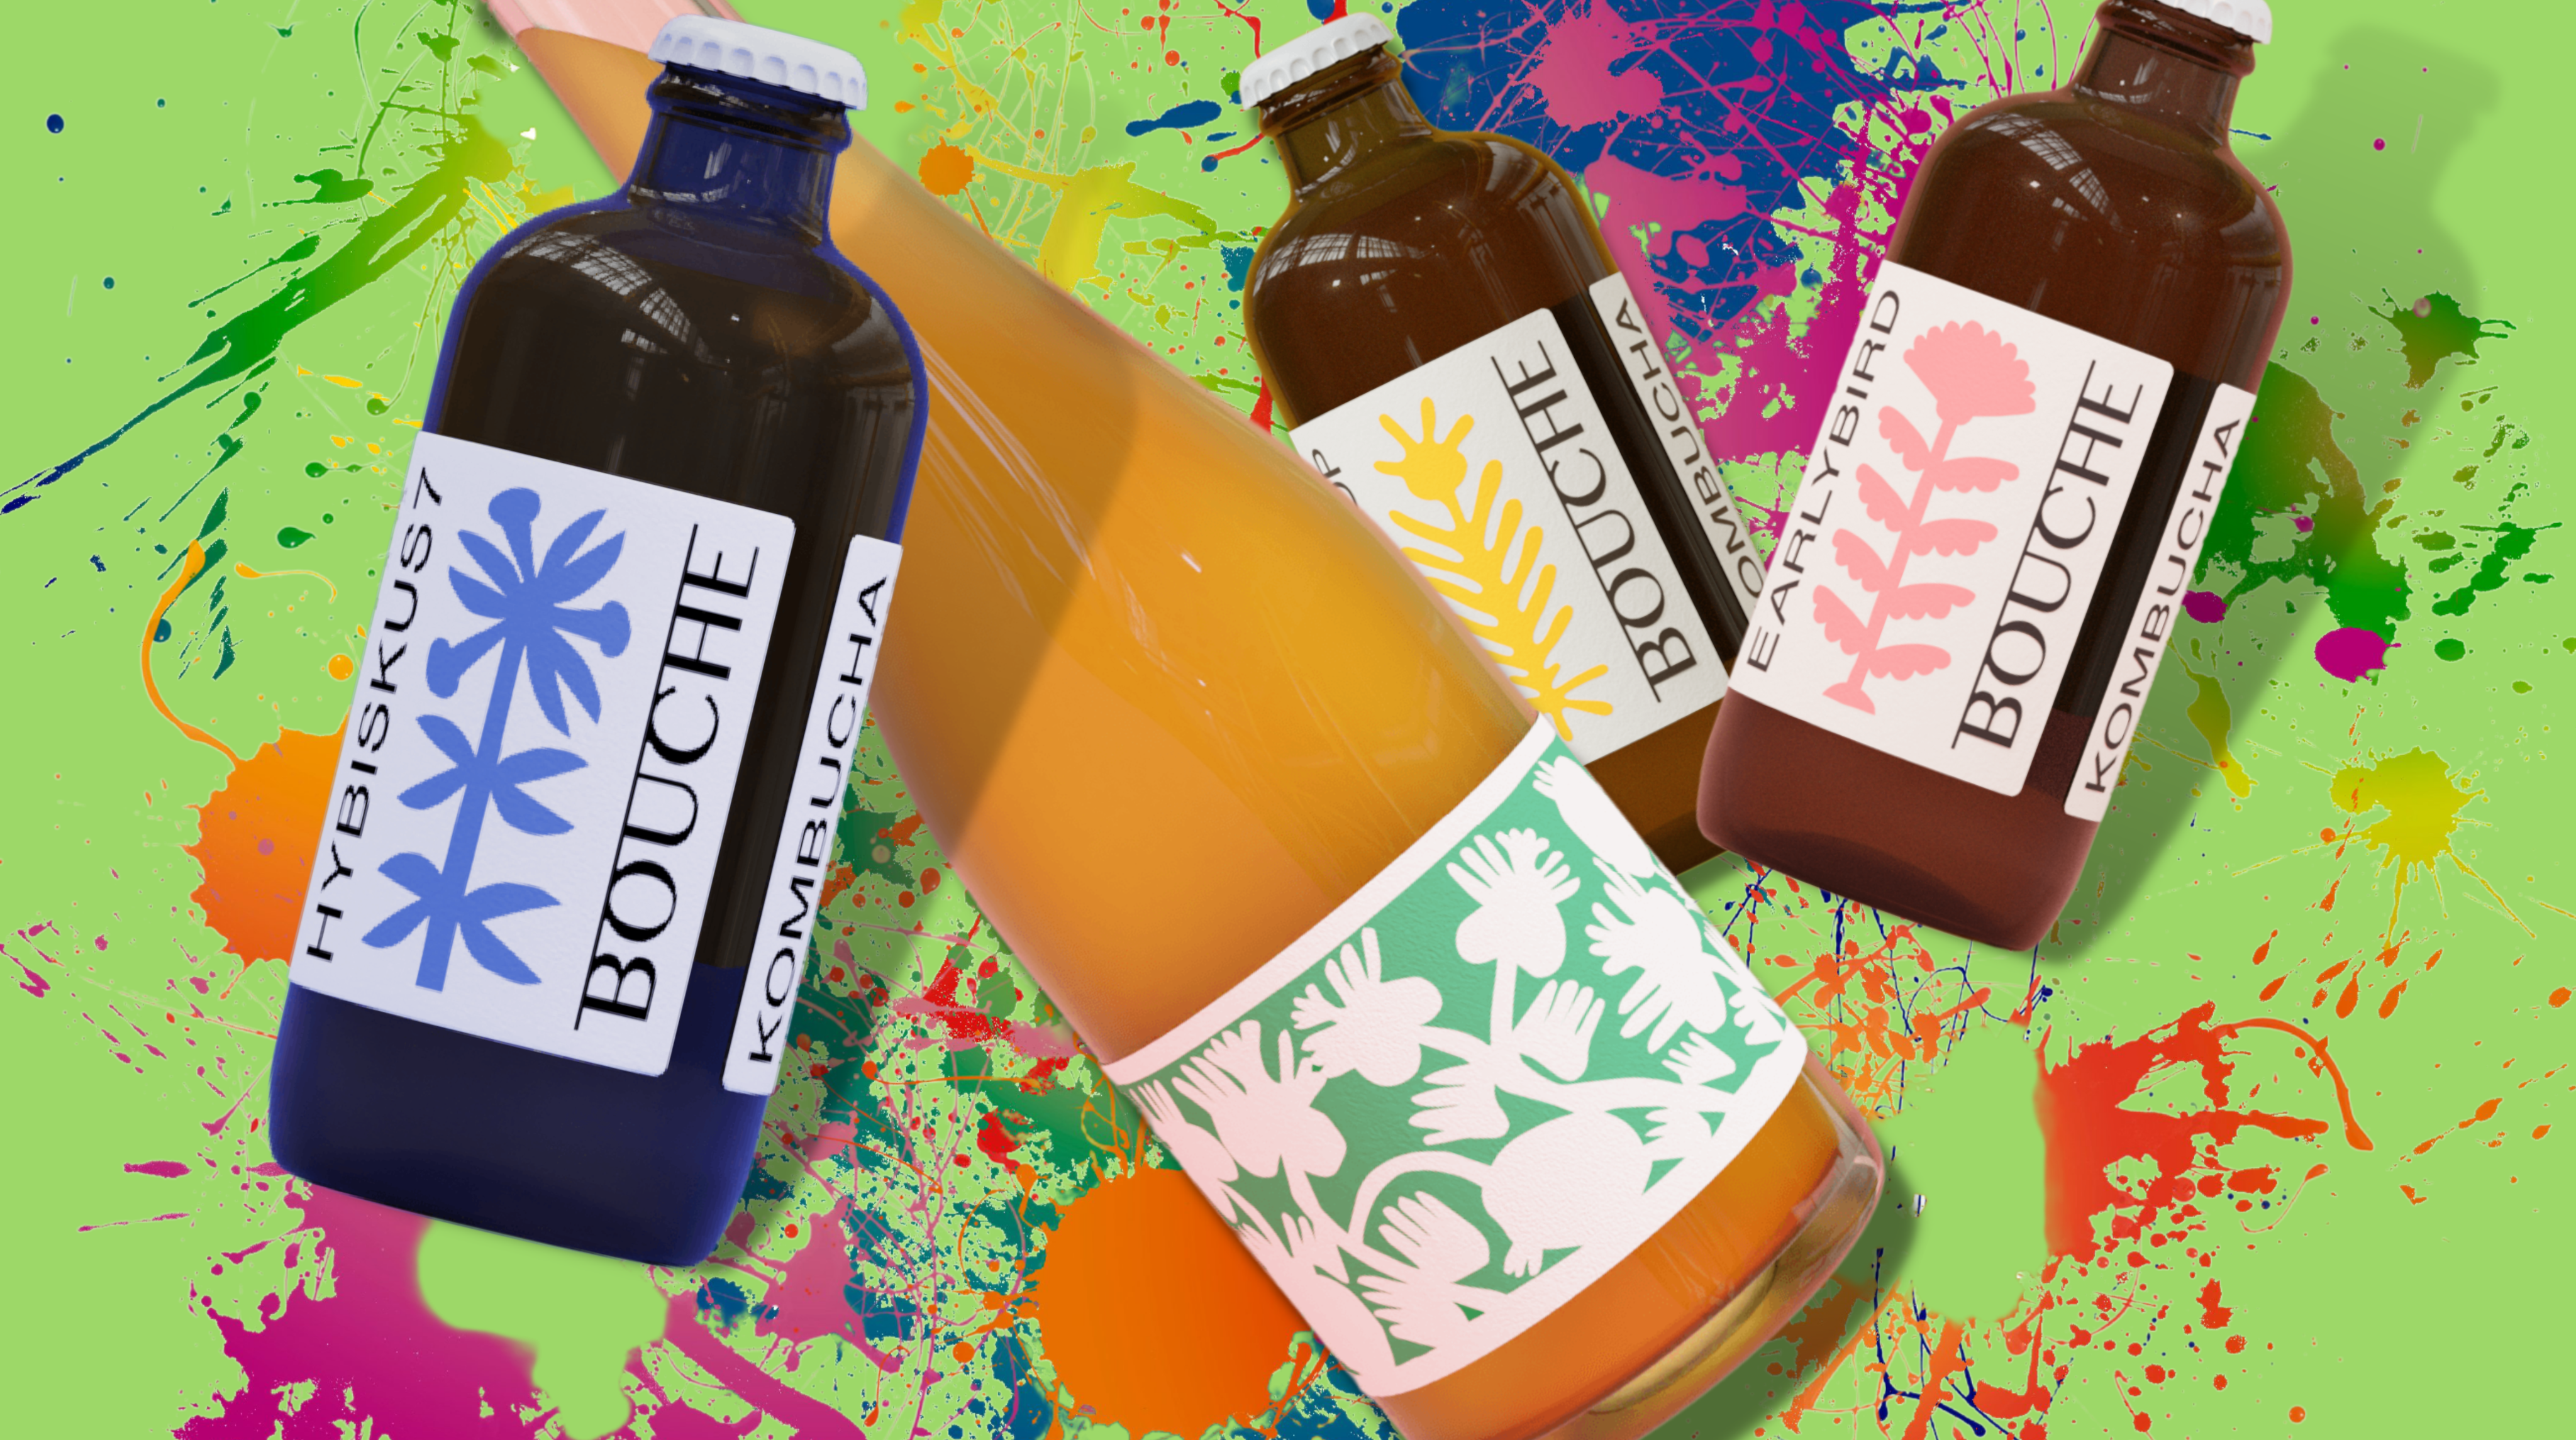 Bouche Kombucha Brewery crafts unique aromatic flavors for your pallet